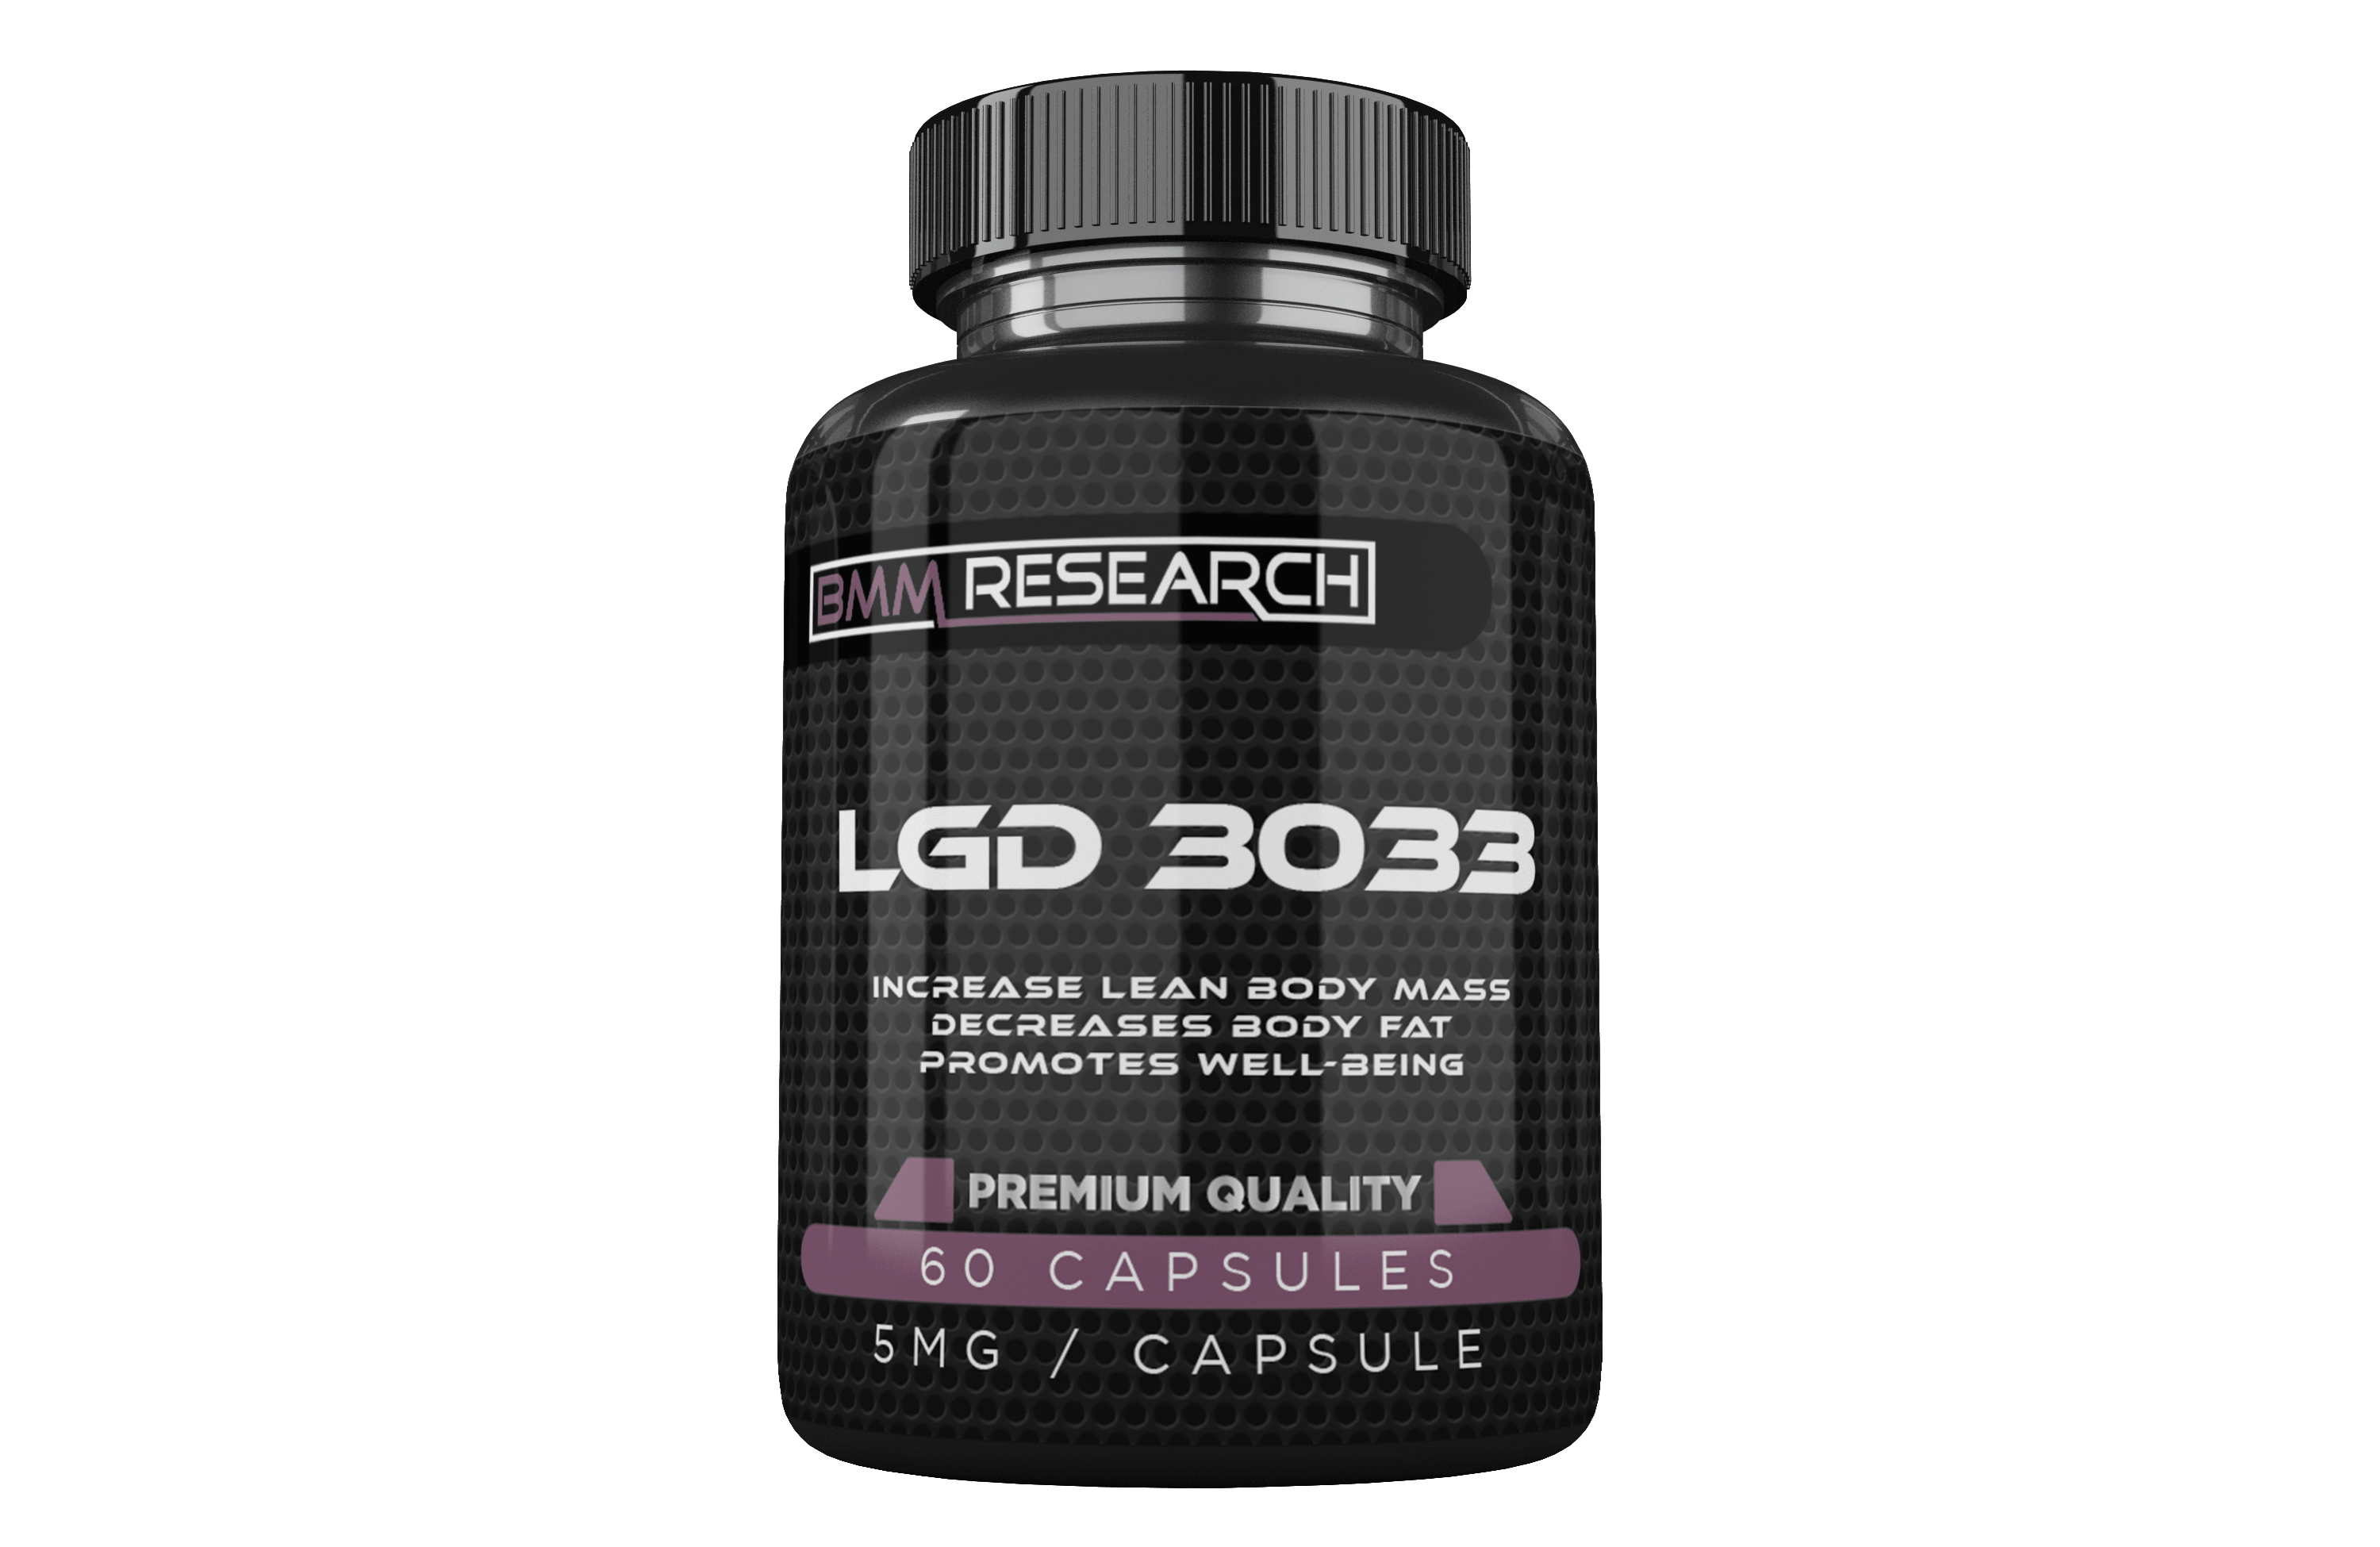 LGD 3033 - Increase lean body mass, decreases body fat en ptomotes well-being